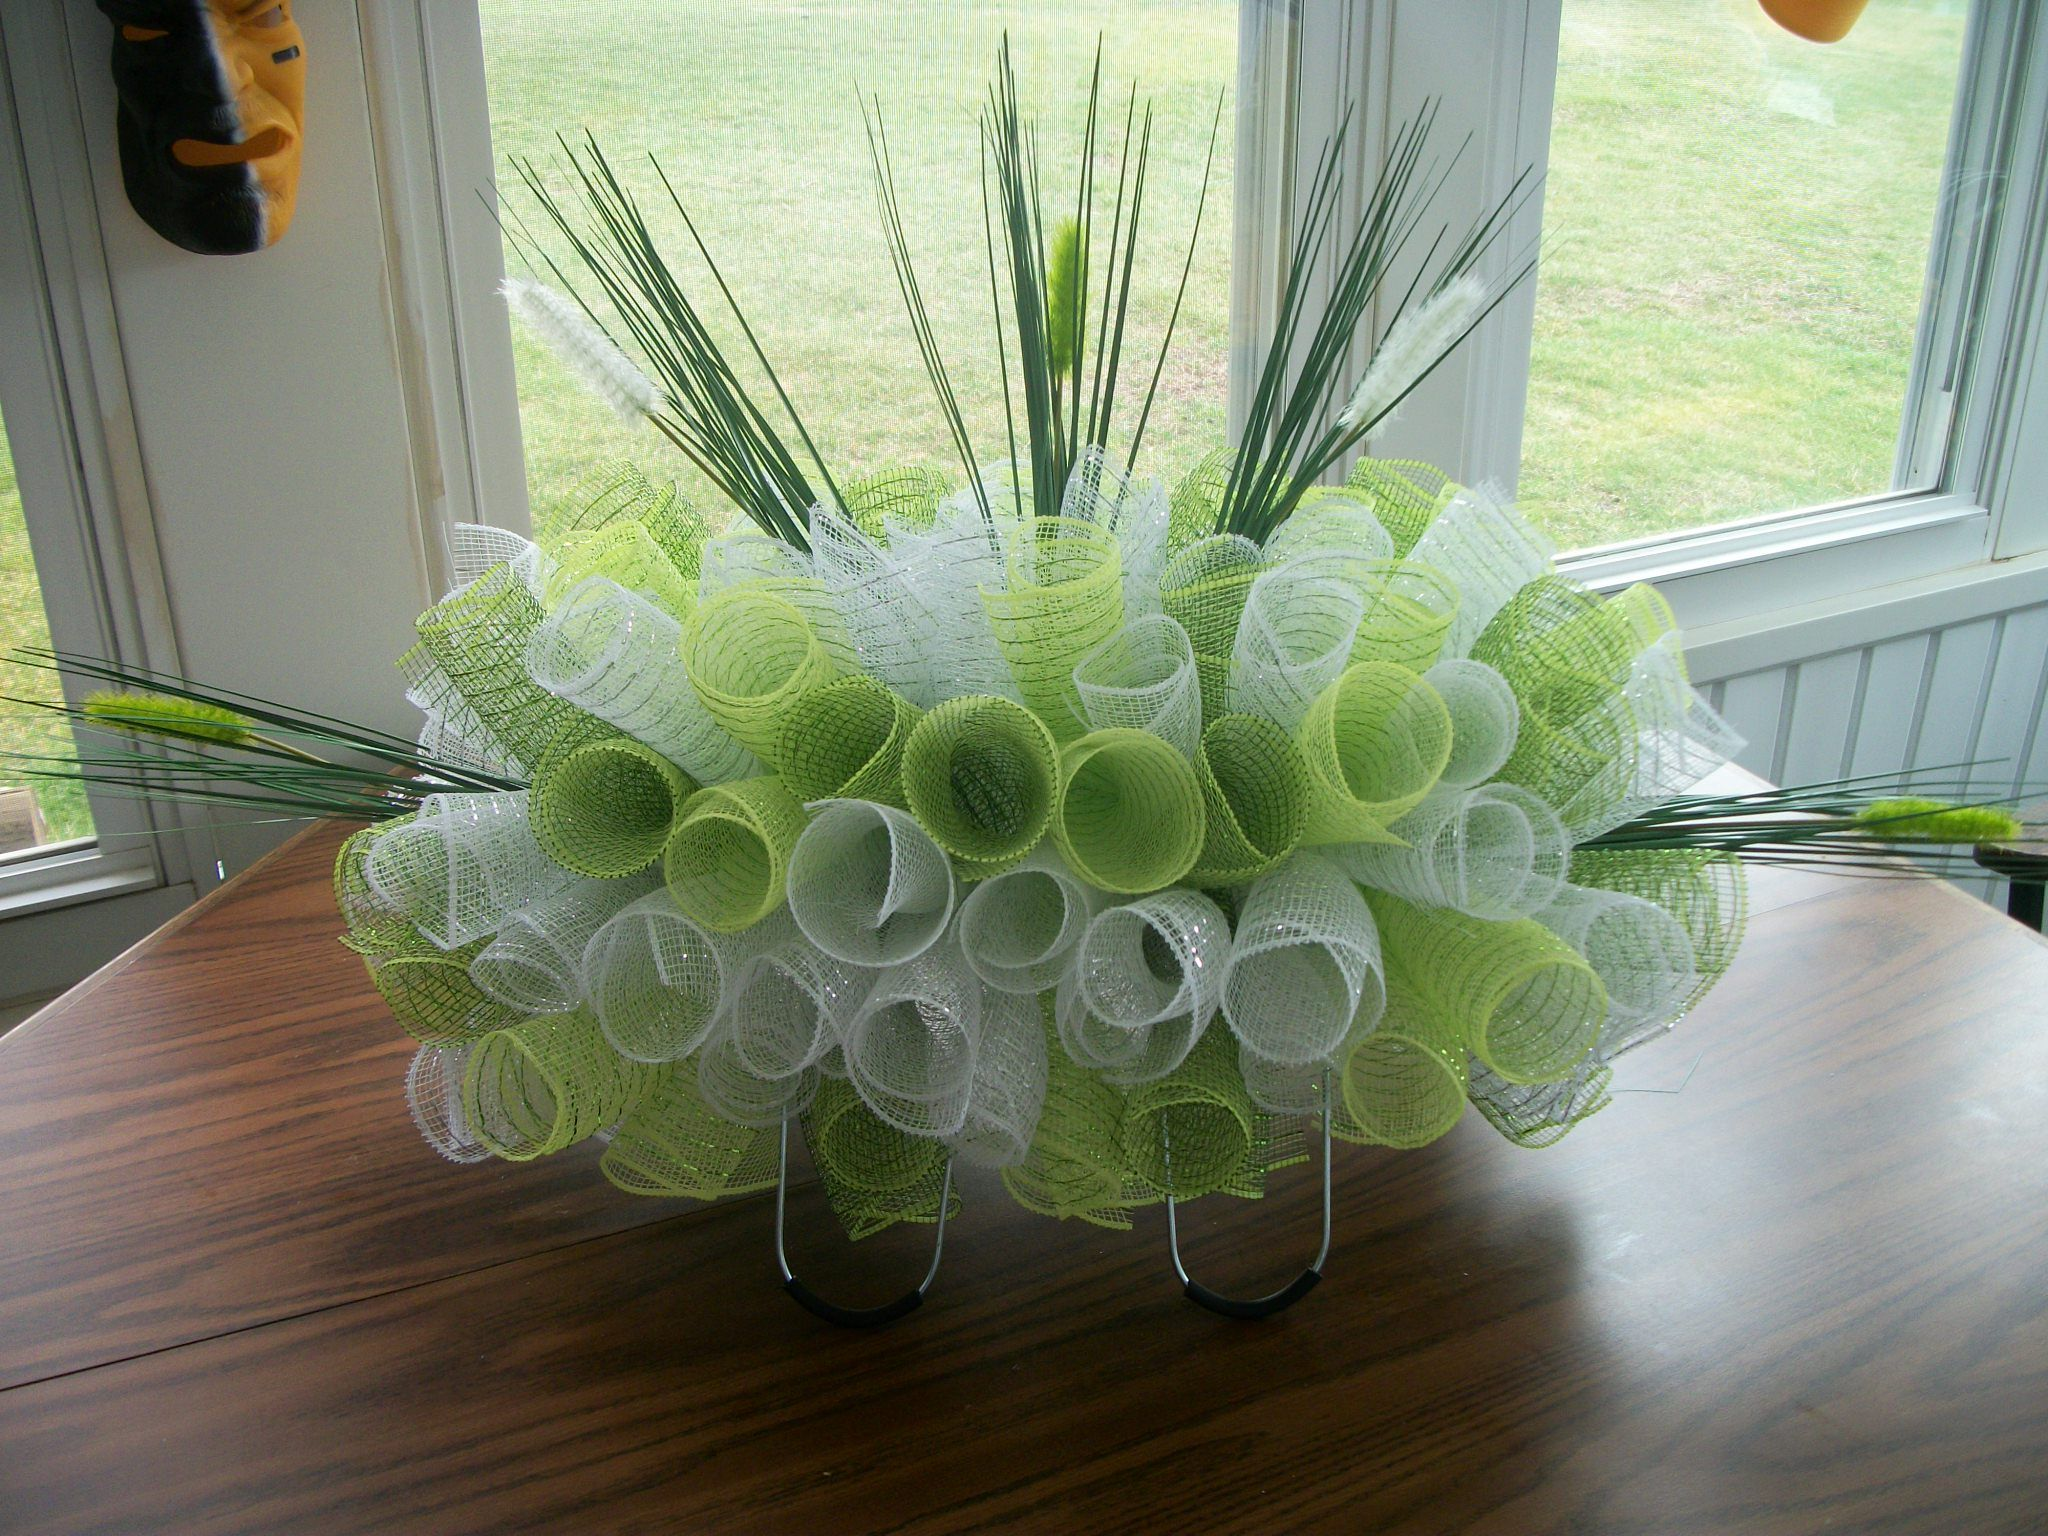 Pin by vicki robinson jordan on cemetery vases and headstone cemetery flowers saddles florals vases wreaths garlands stools door wreaths horse tack reviewsmspy